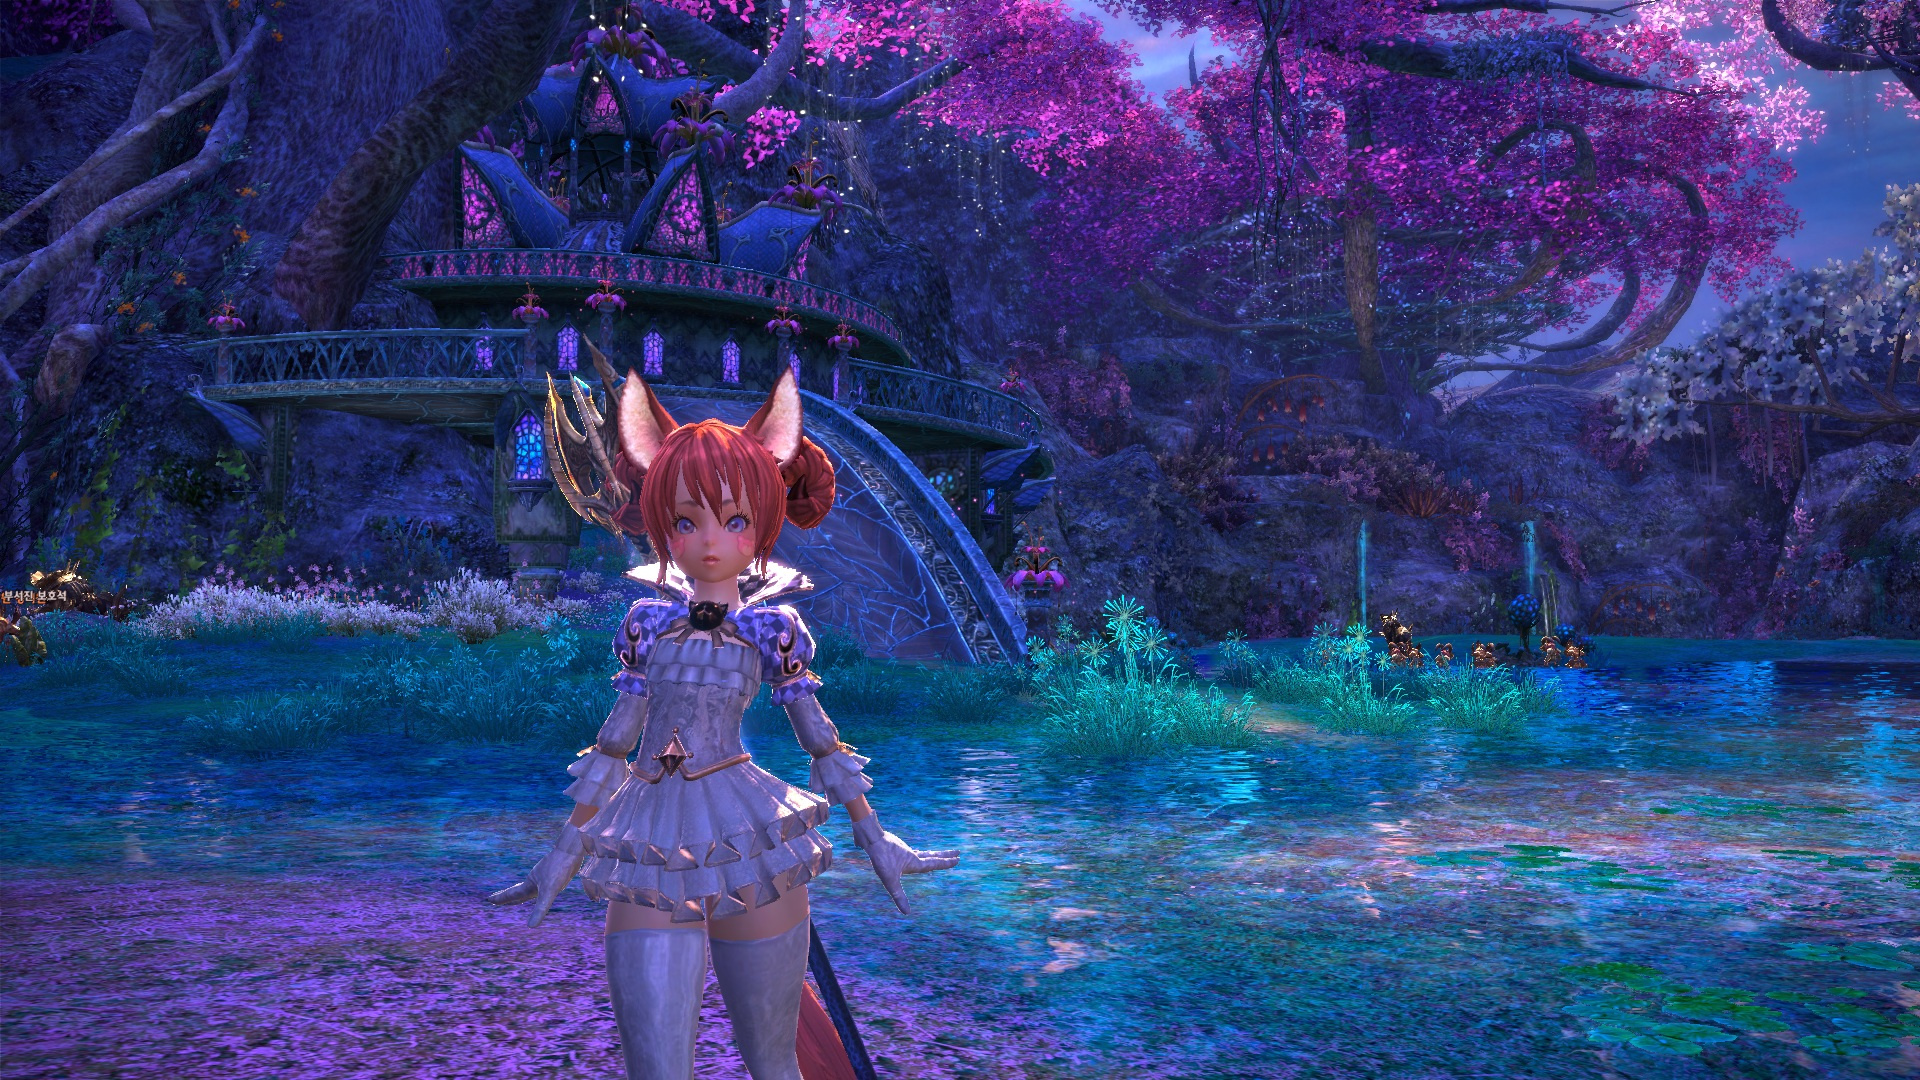 friskuni games opening gameplay trailer experience preview online media removed heres tera